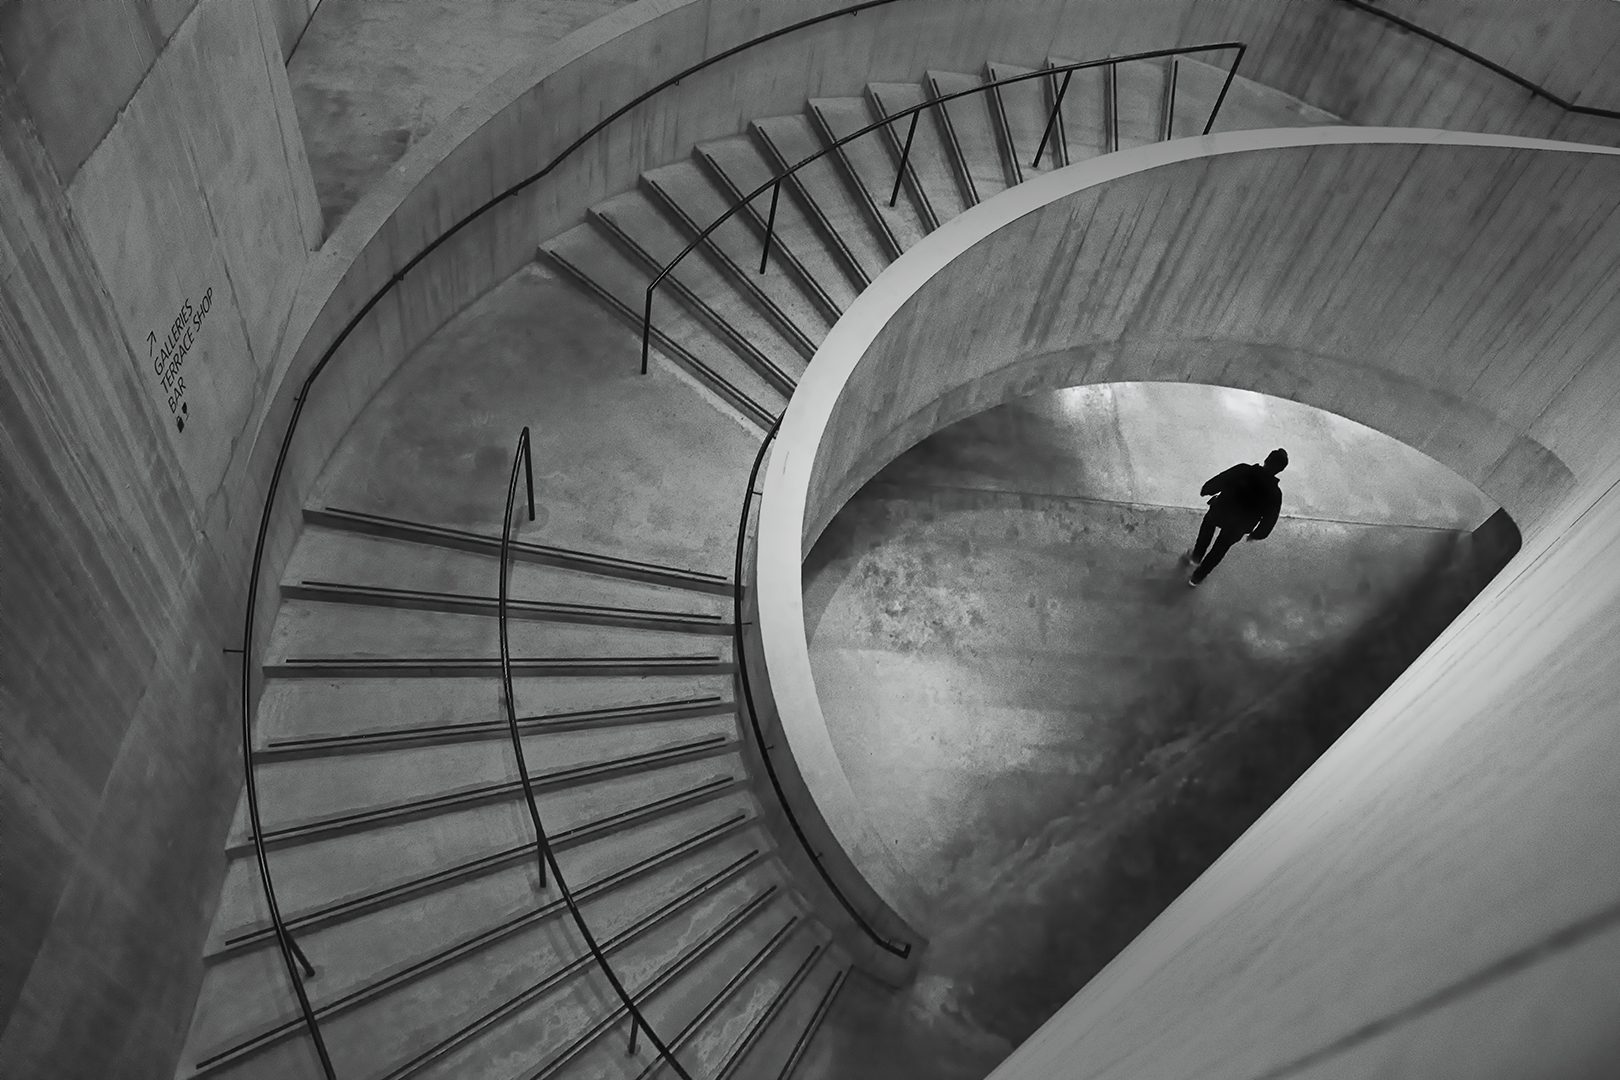 This picture, a man walking under the winding stairway was captured on 12 February 2020 at Tate Modern. The number of visitors was relatively less due to COVID 19 threat.  It was around 4 pm that I noticed this frame and I wanted a person in a black outfit to cross this point to contrast against the light patch on the floor.  After a wait of about 30 minutes, the right person came and I was successful in capturing the moment giving the feeling of exit.